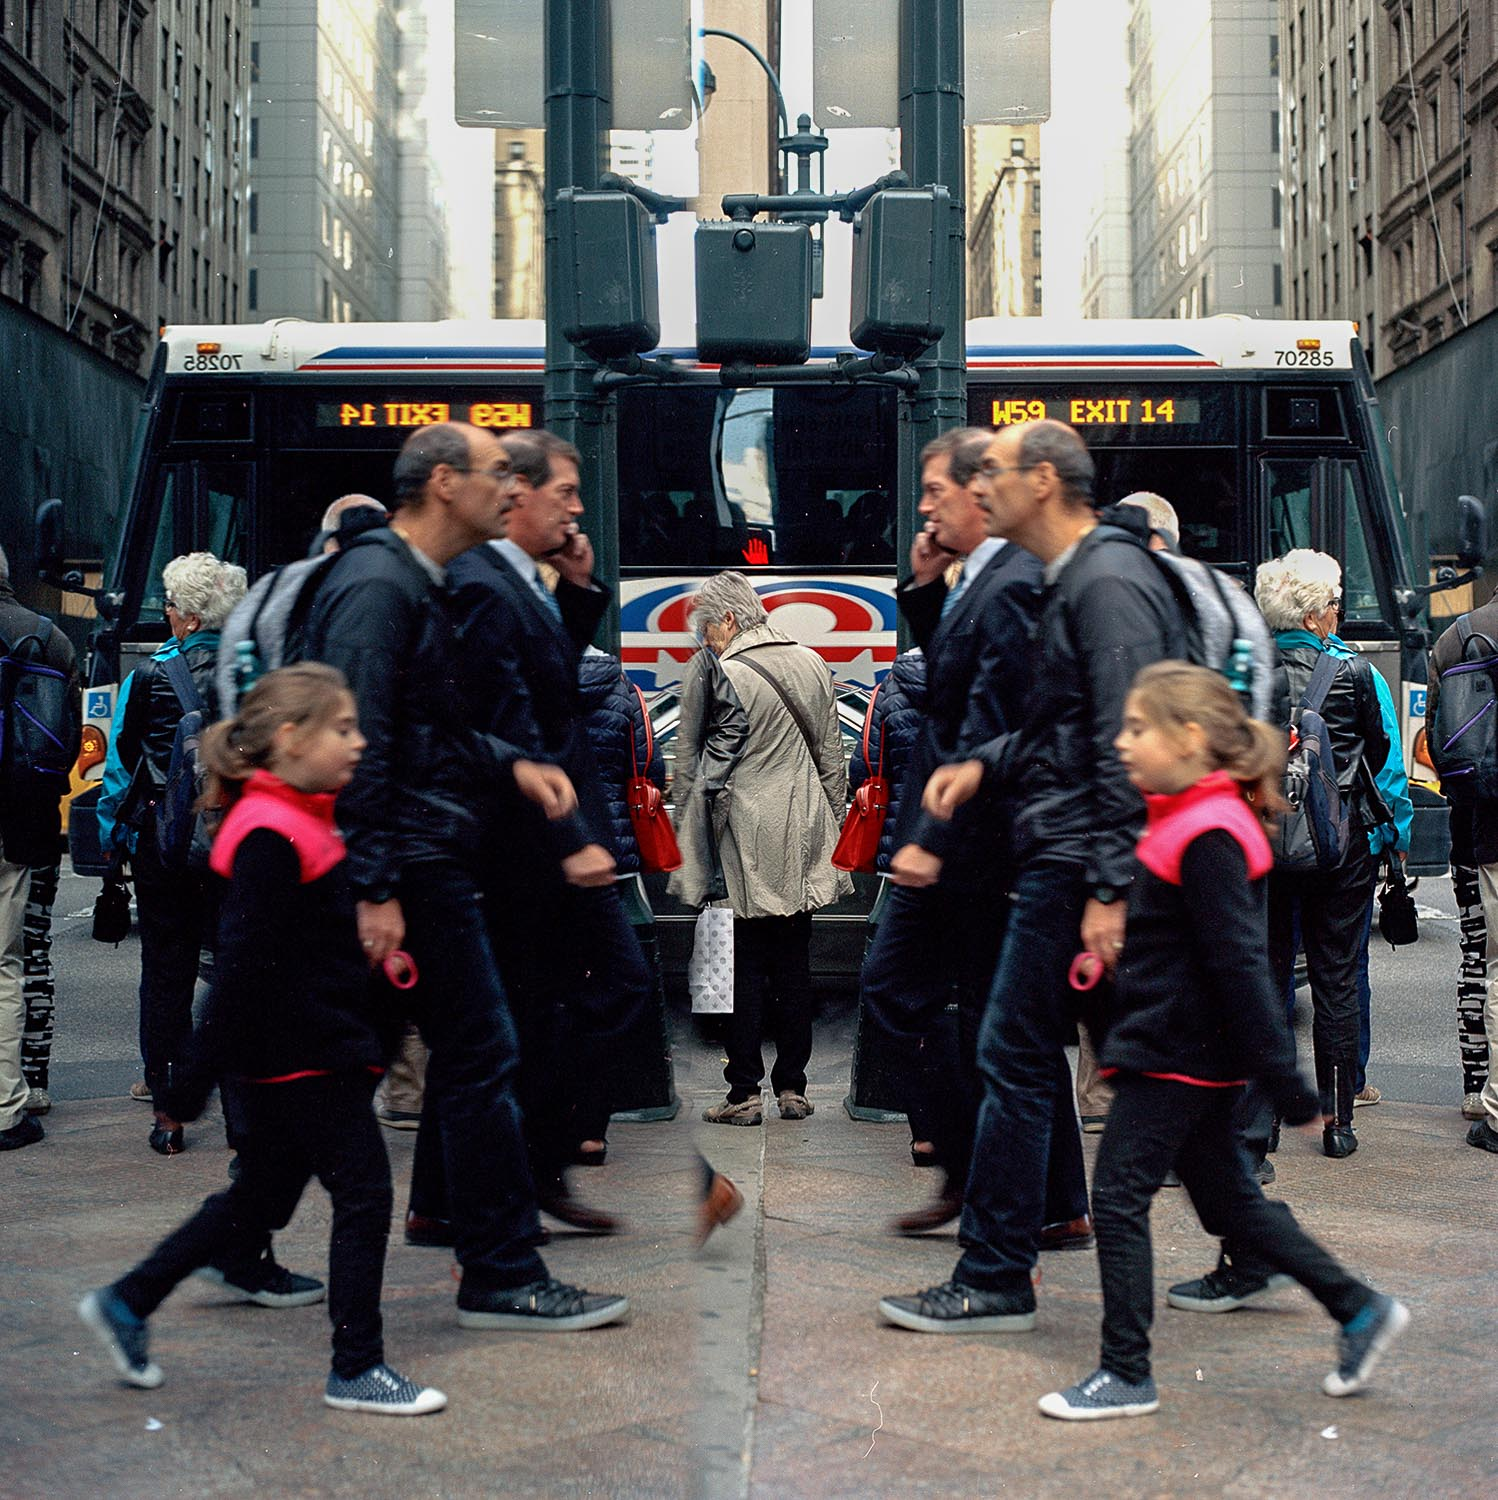 A reflection of tourists in Midtown, Manhattan, New York City.